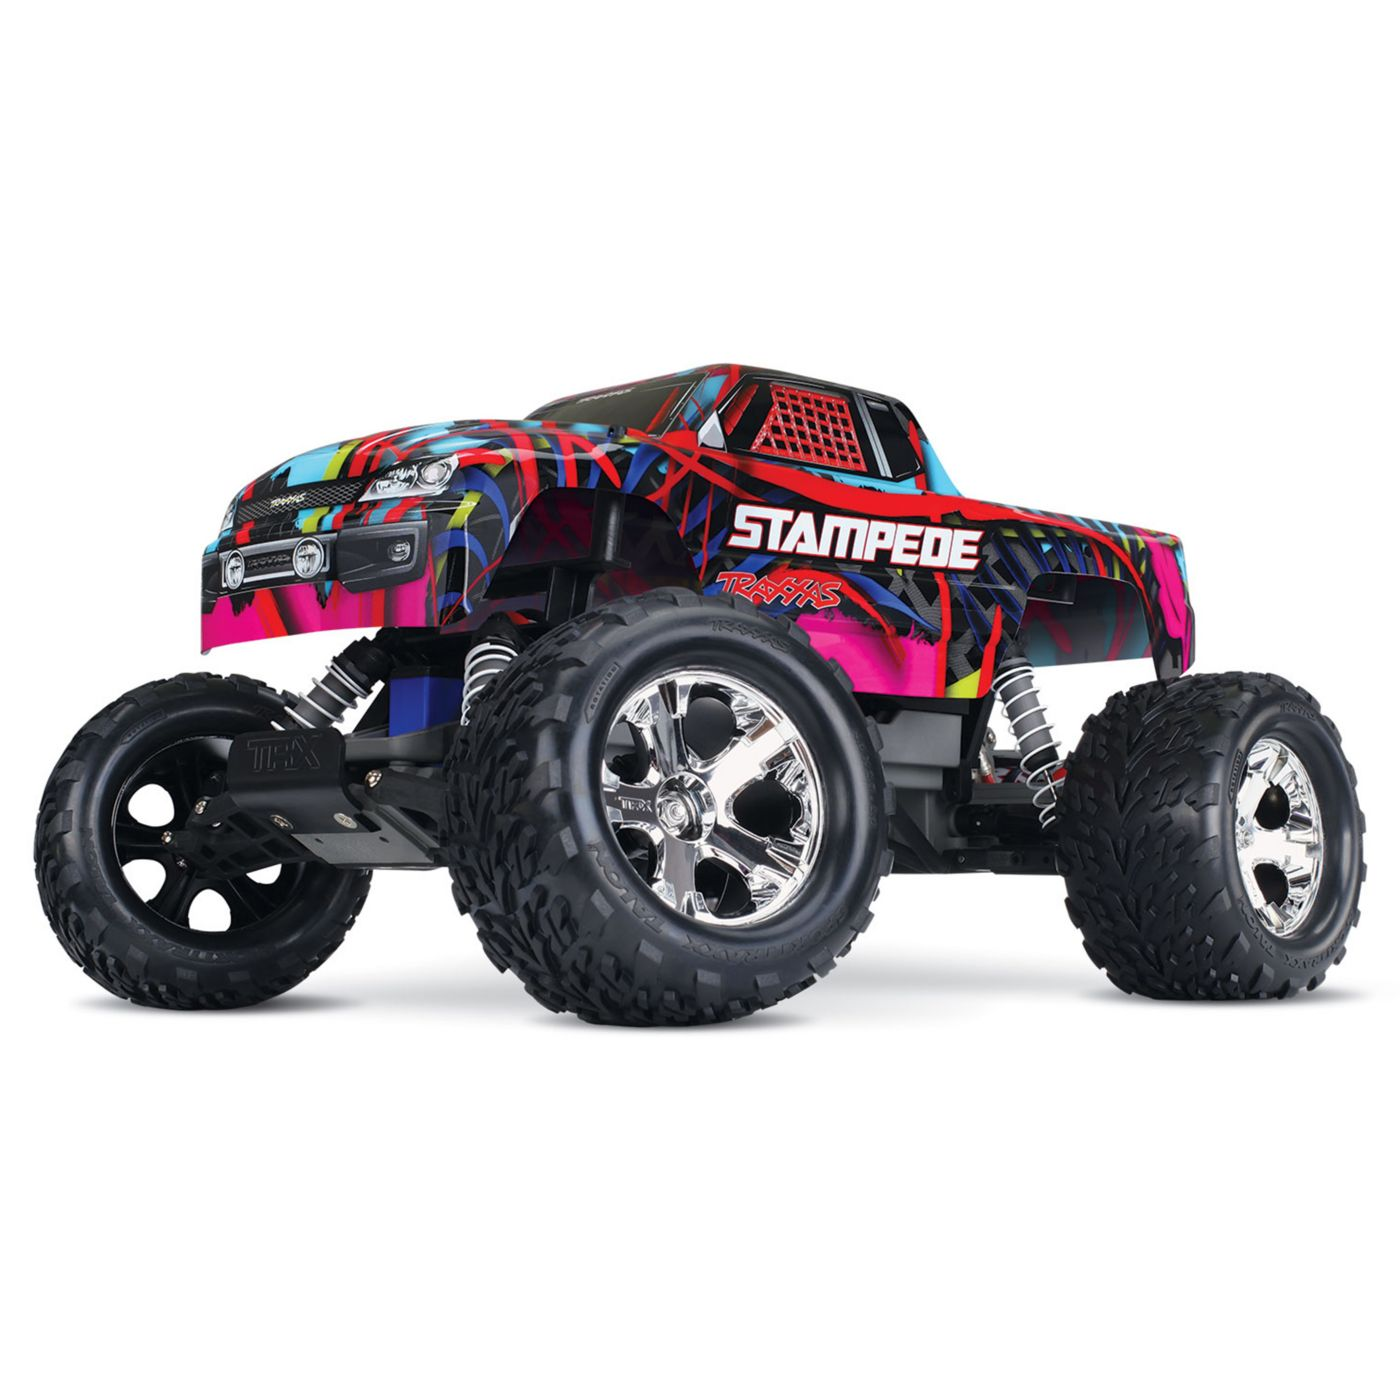 1/10 Stampede XL-5 2WD Monster Truck Brushed RTR, Hawaiian Edition